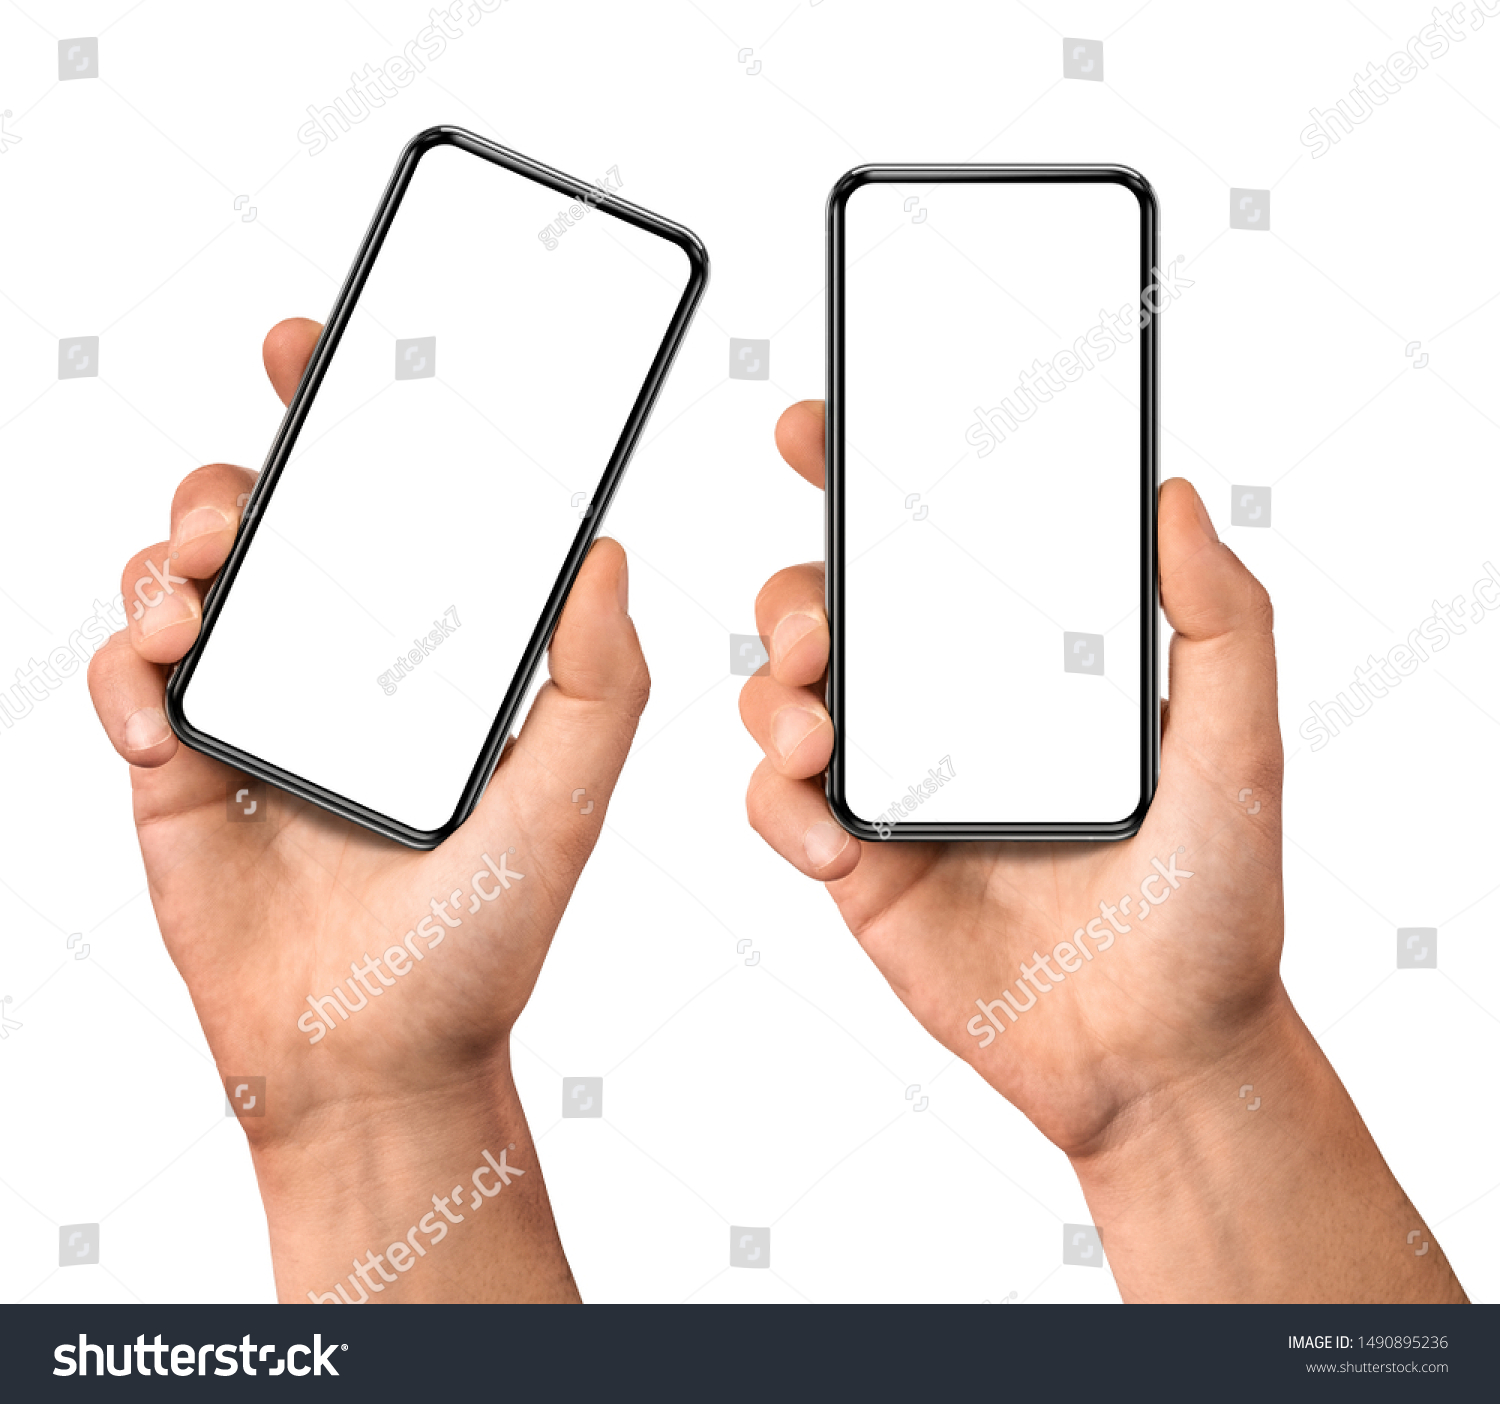 Man hand holding the black smartphone  blank screen with modern frameless design, two positions vertical and rotated - isolated on white background #1490895236